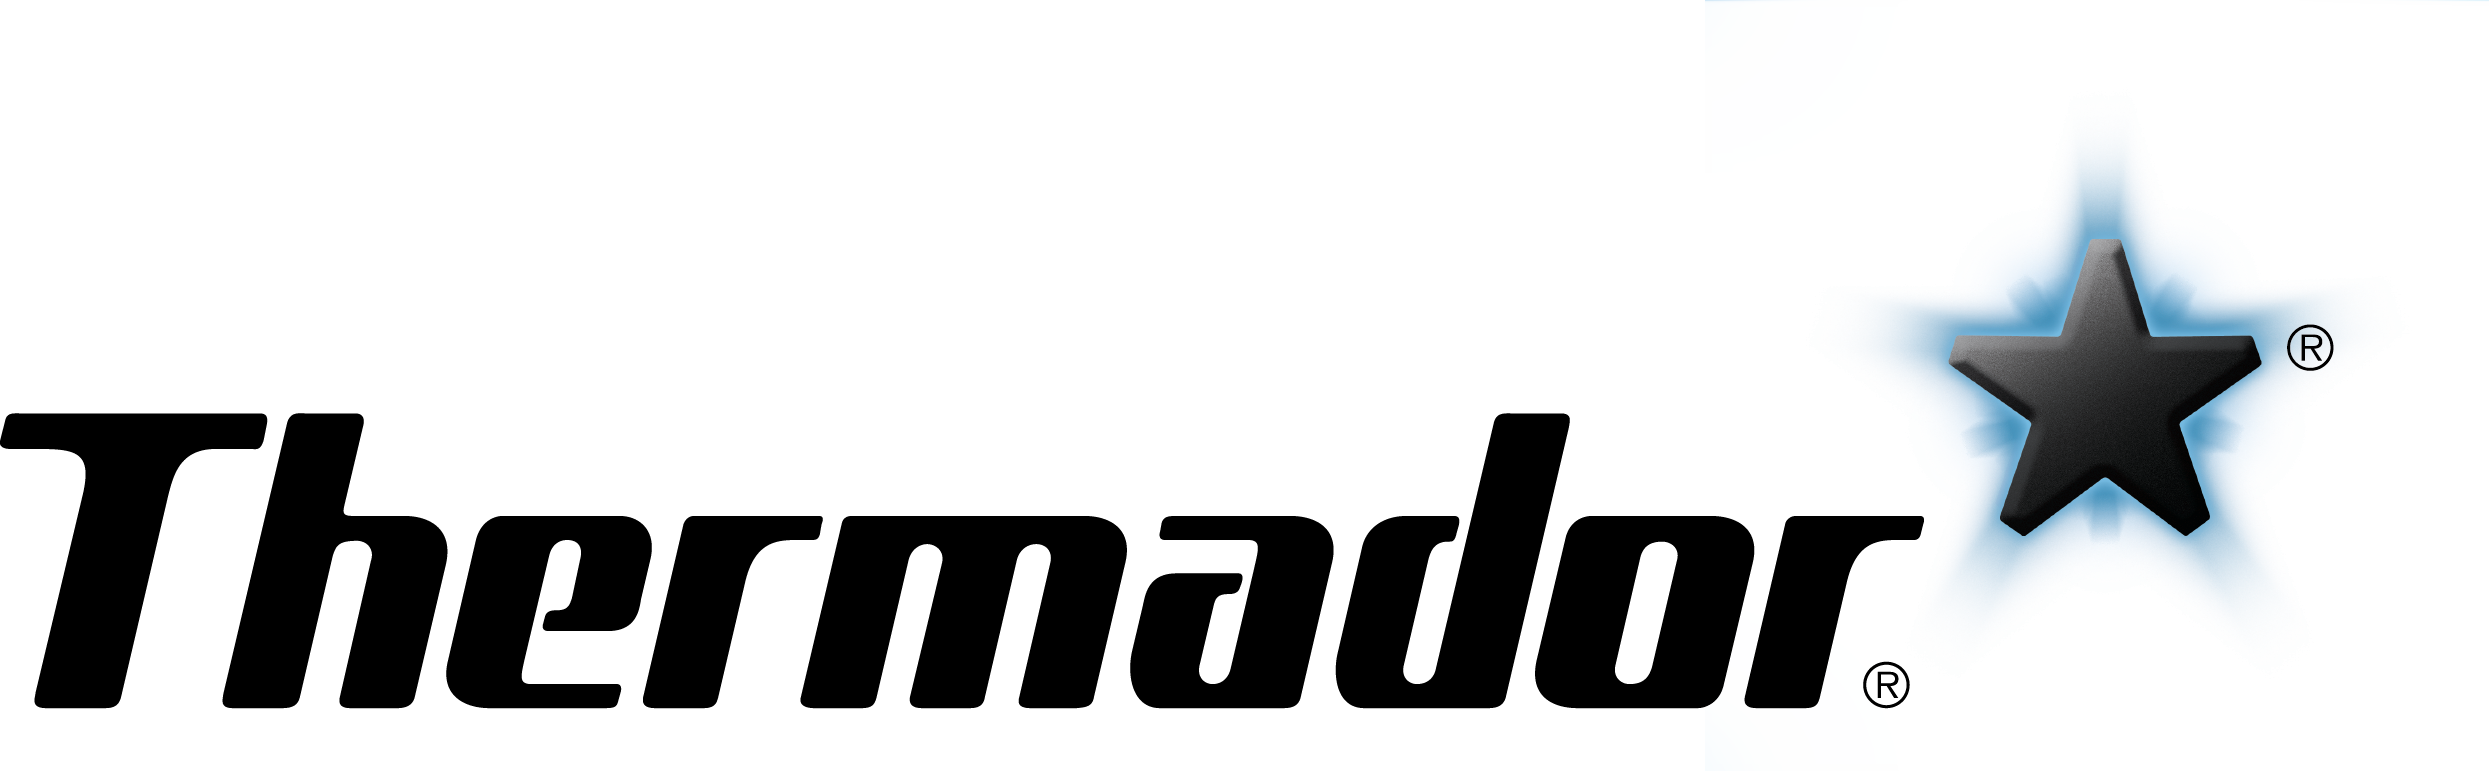 Thermador Fridge Technician, KitchenAid Refrigerator Mechanic